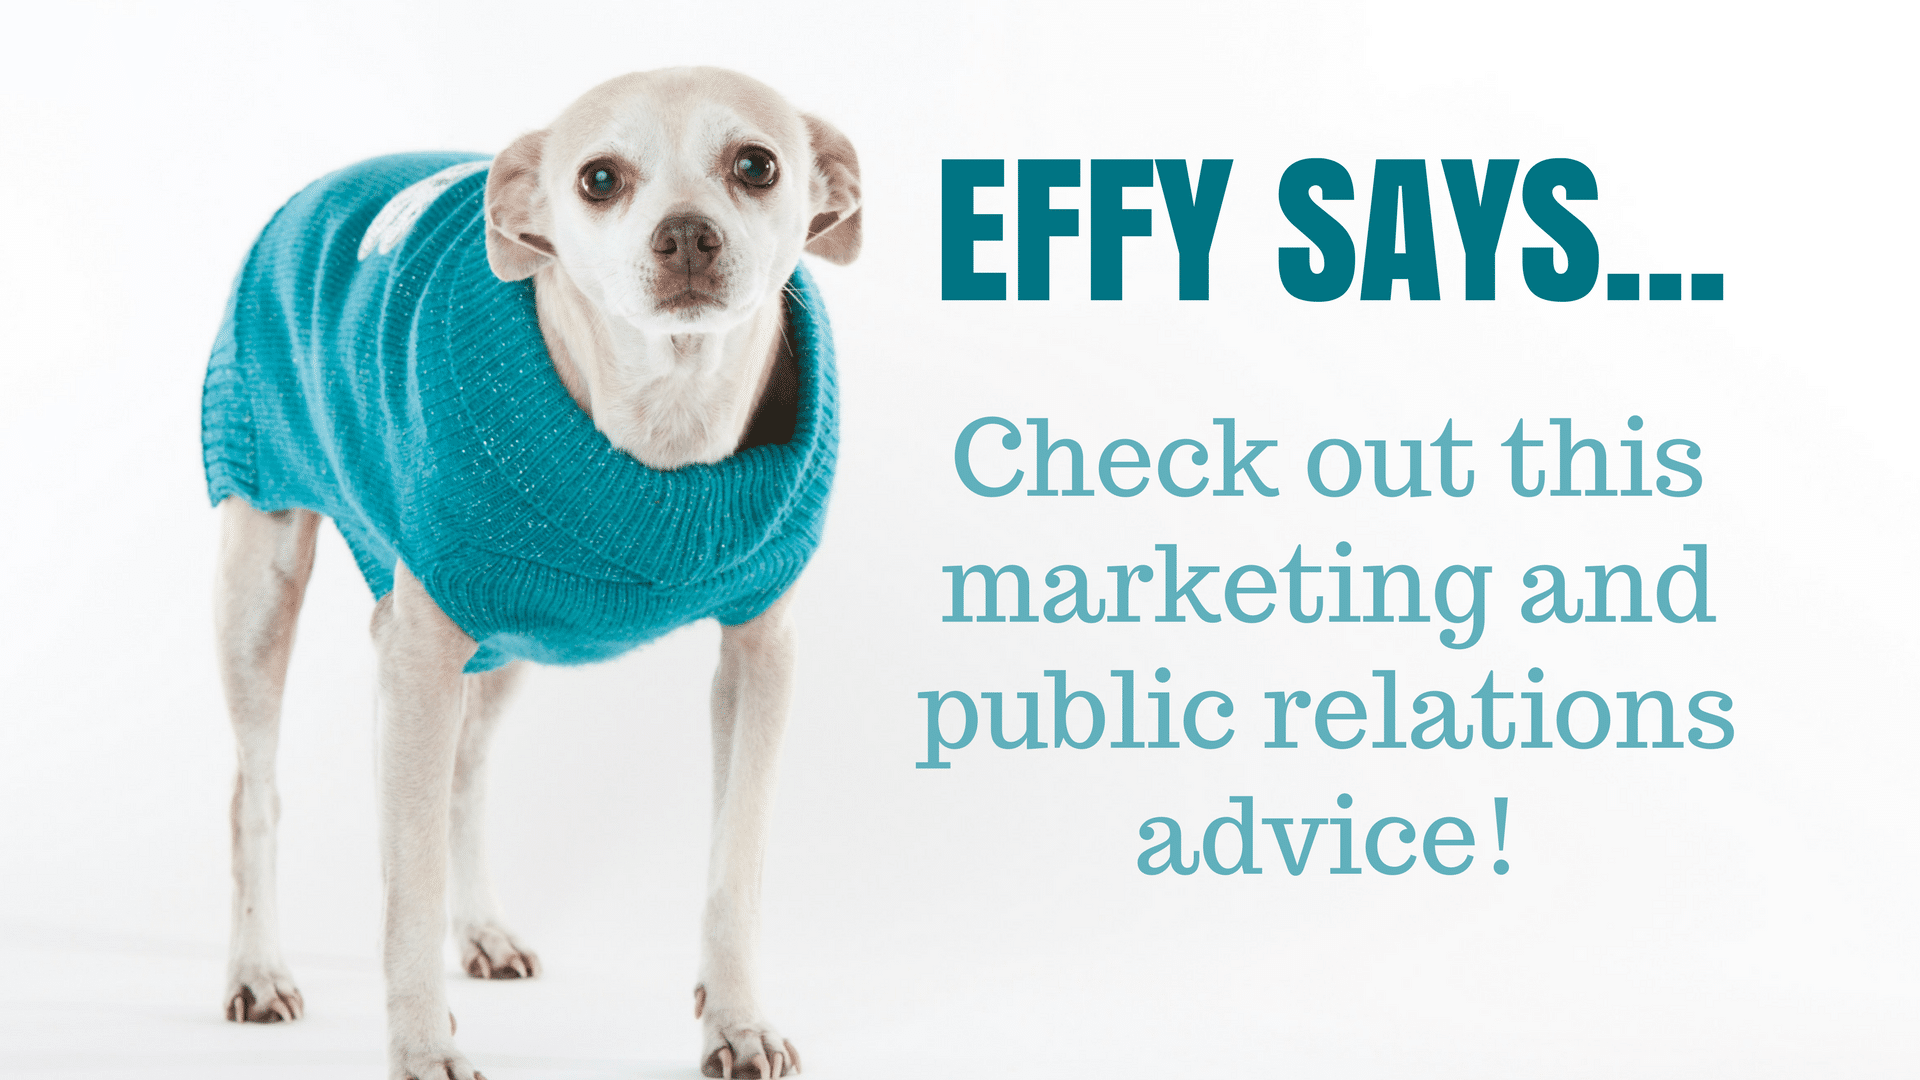 Effy Says… Respond To Comments On Social Media!